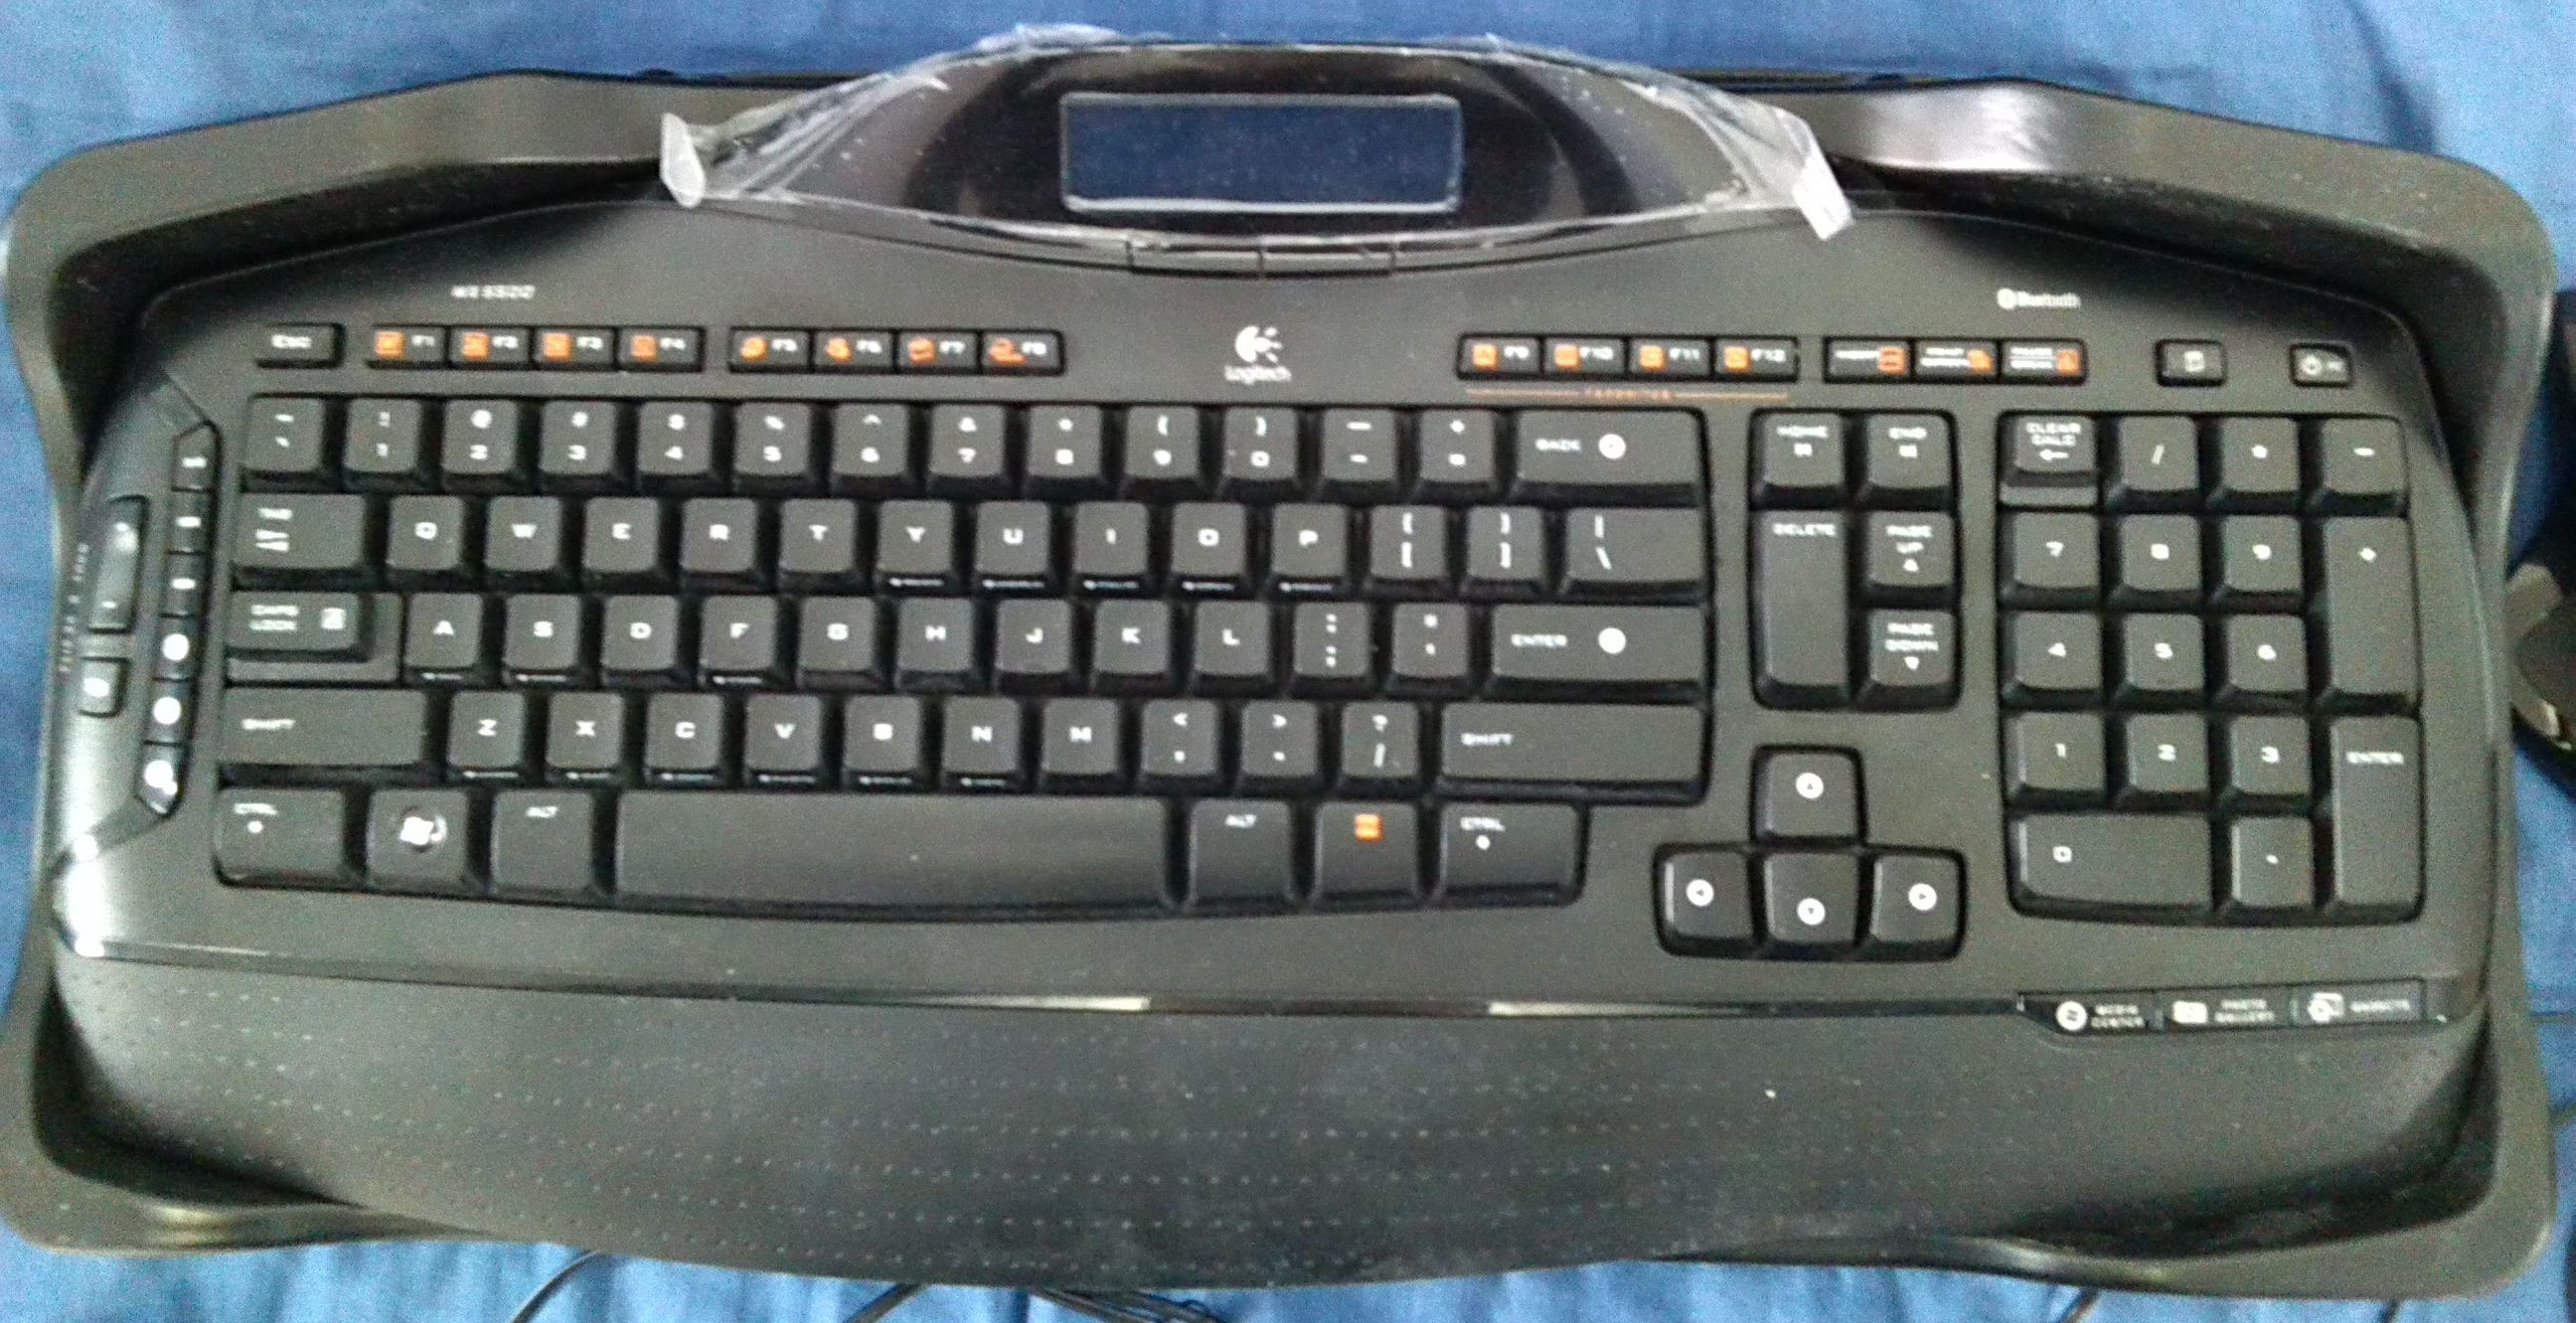 Logitech Cordless Desktop MX 5500 Revolution - Keyboard